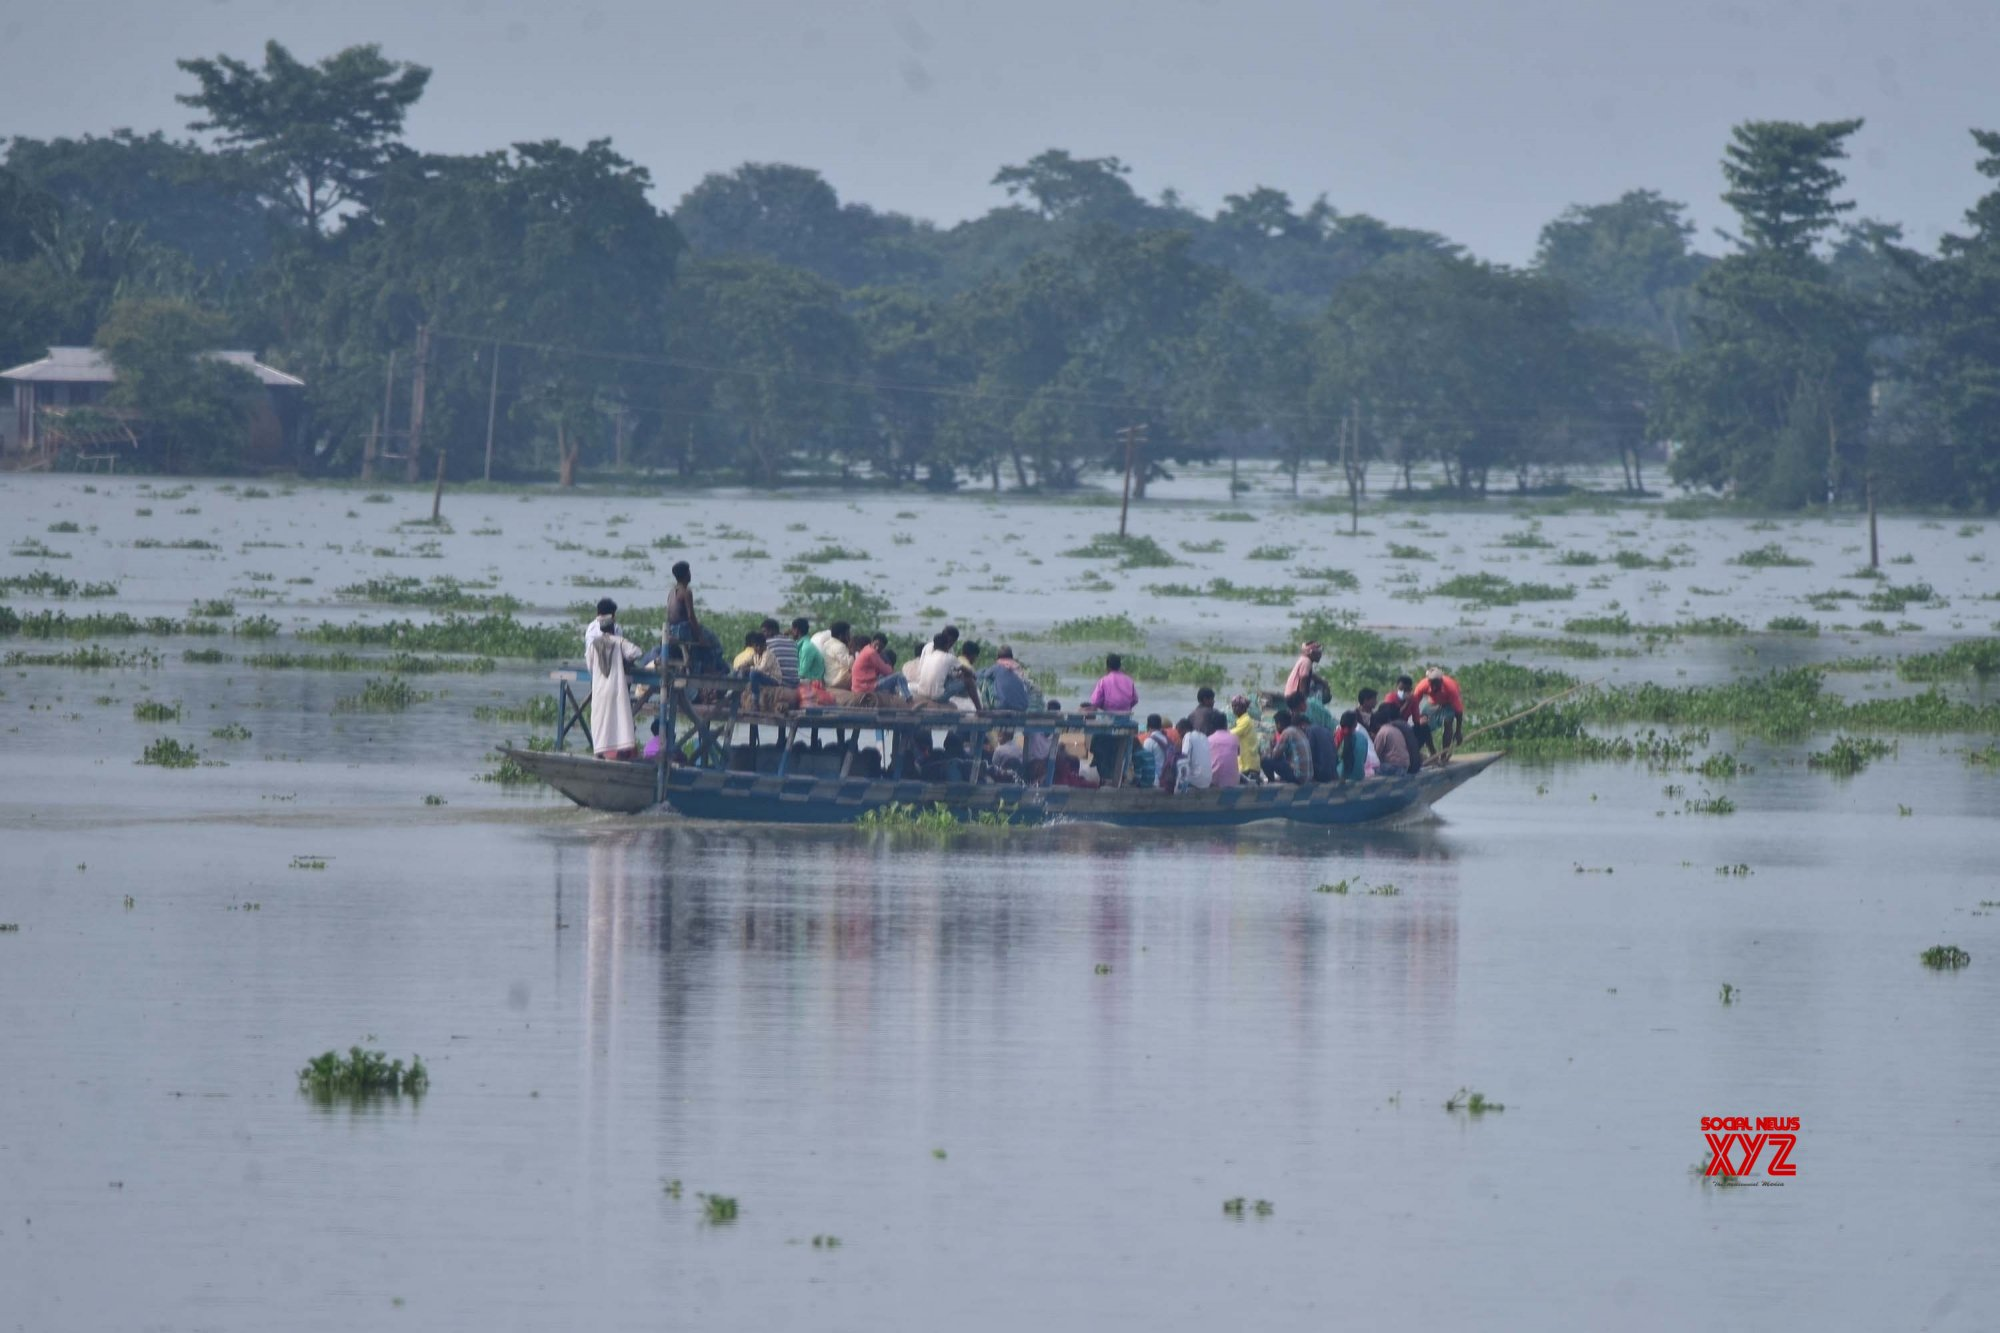 Assam flood situation remains grim, 15 lakh people hit, death toll at 27